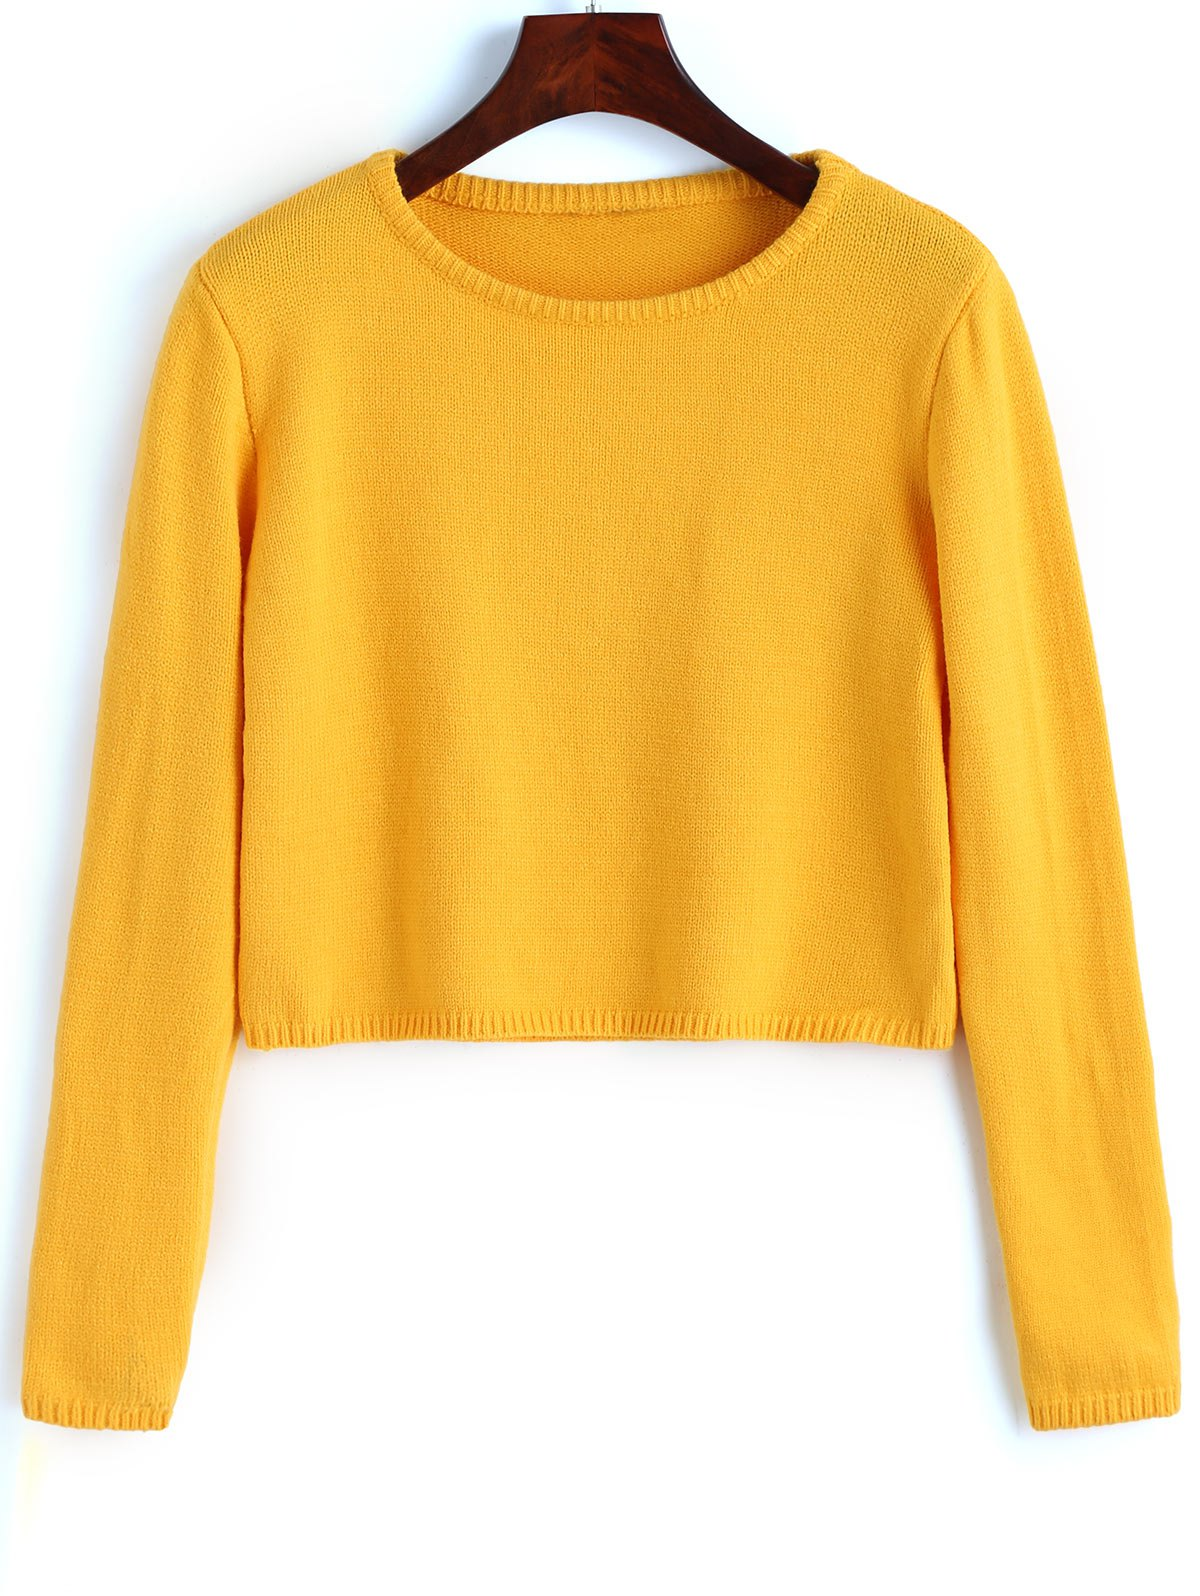 2018 Plain Cropped Pullover Sweater YELLOW M In Sweaters ...